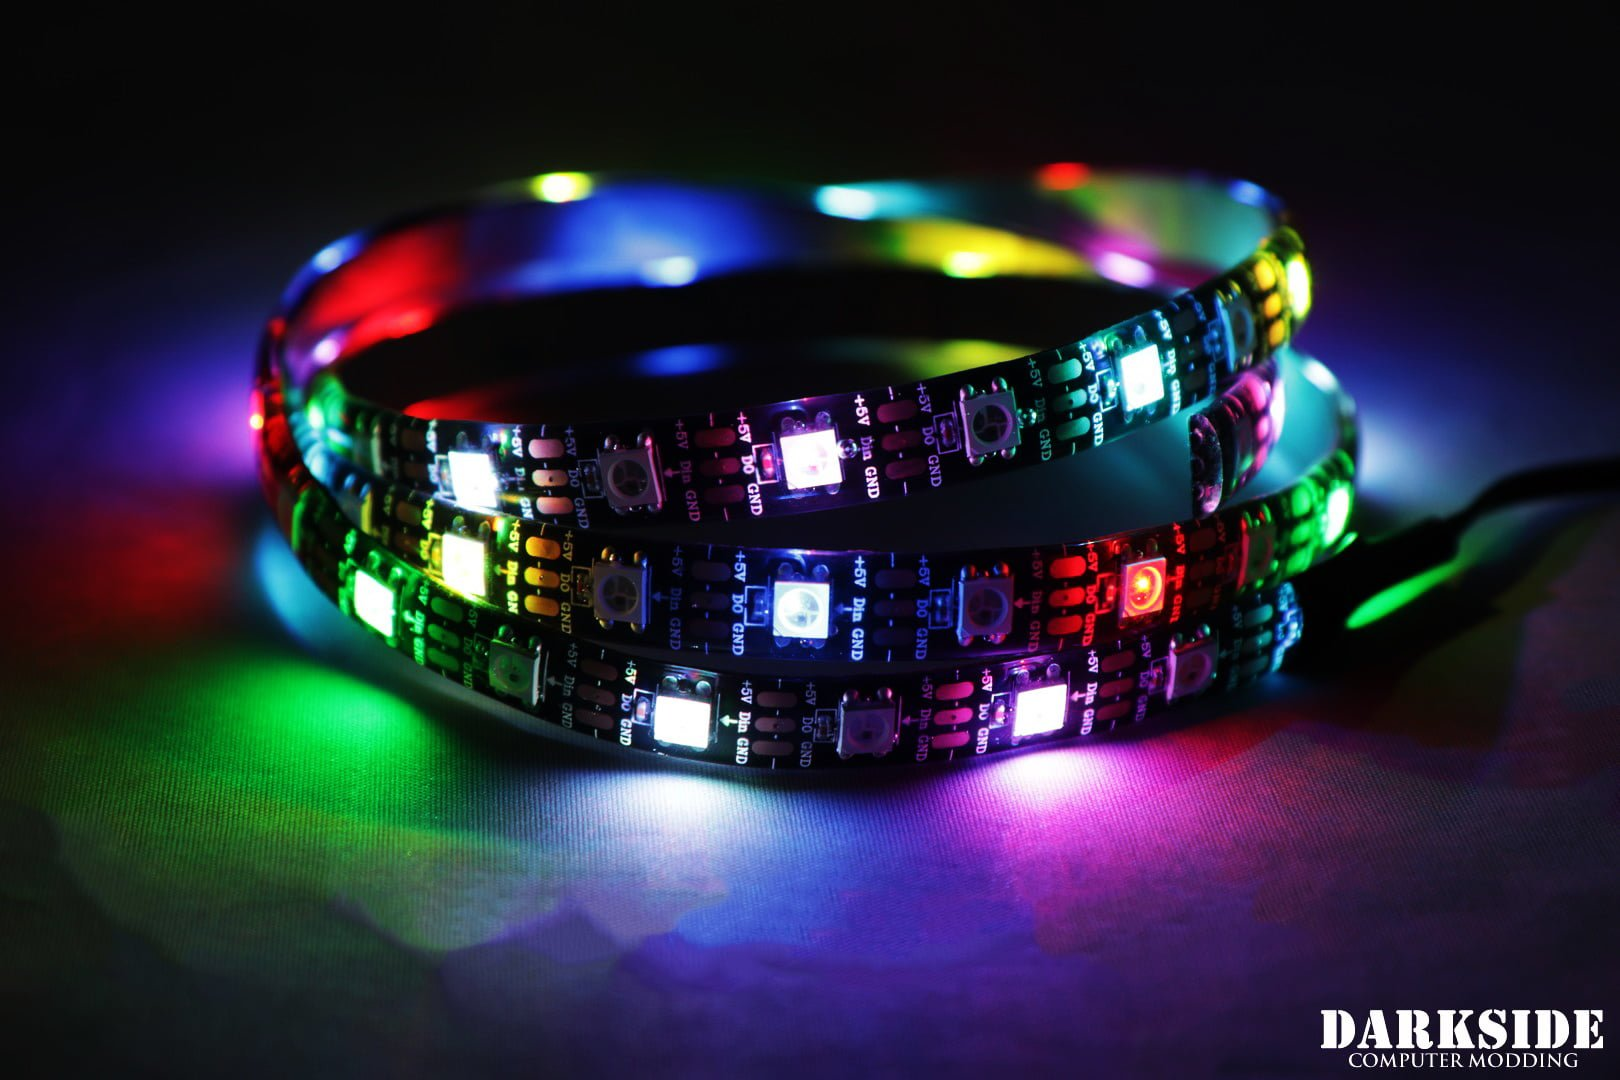 DarkSide Digital RGB LED 5v DC Kit (1 meter)